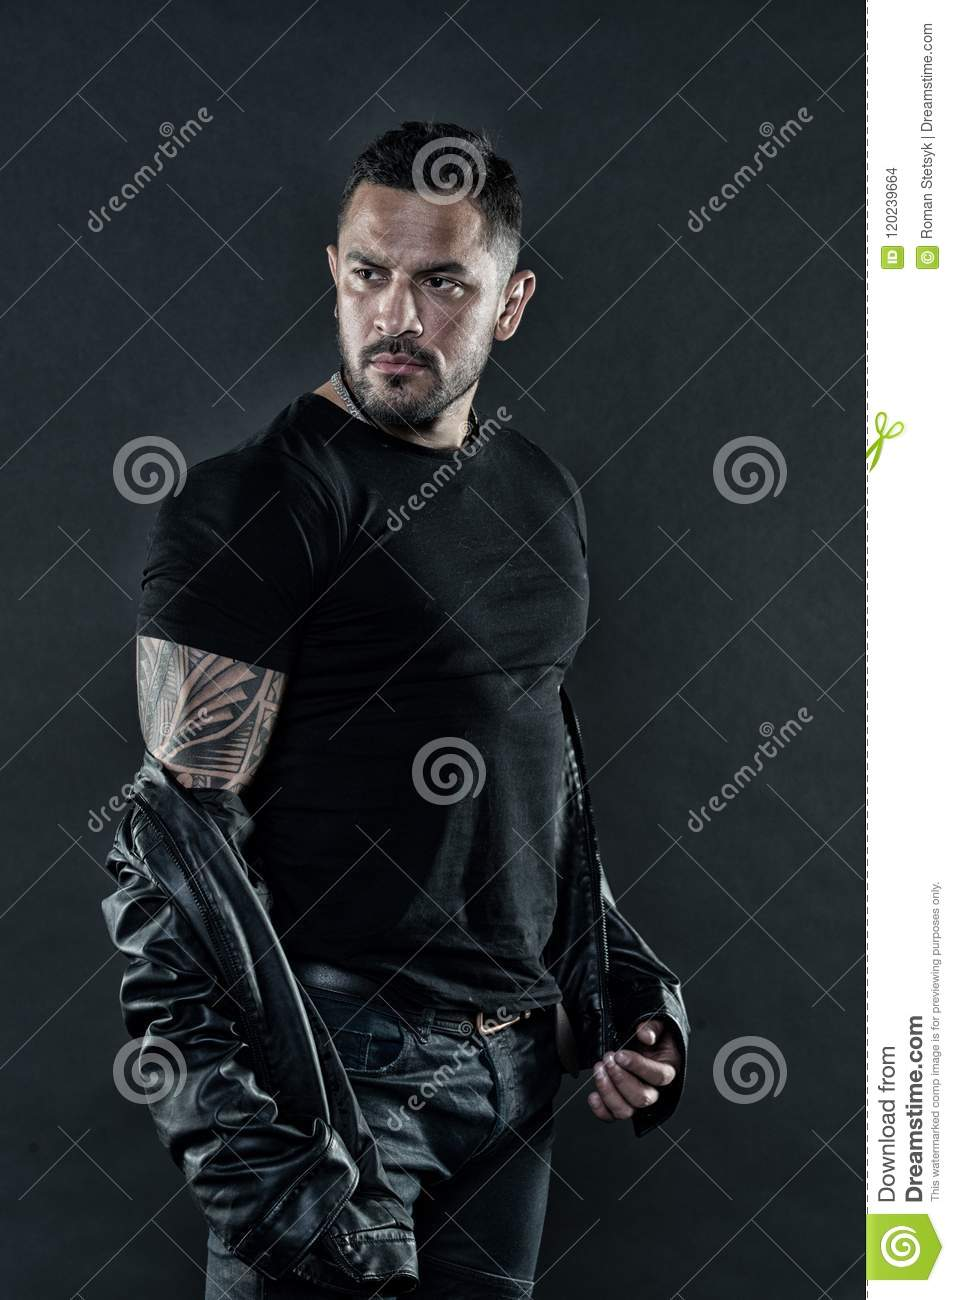 dc8b848c4 Tattooed man in tshirt and leather jacket. Bearded man show tattoo on  strong arm.